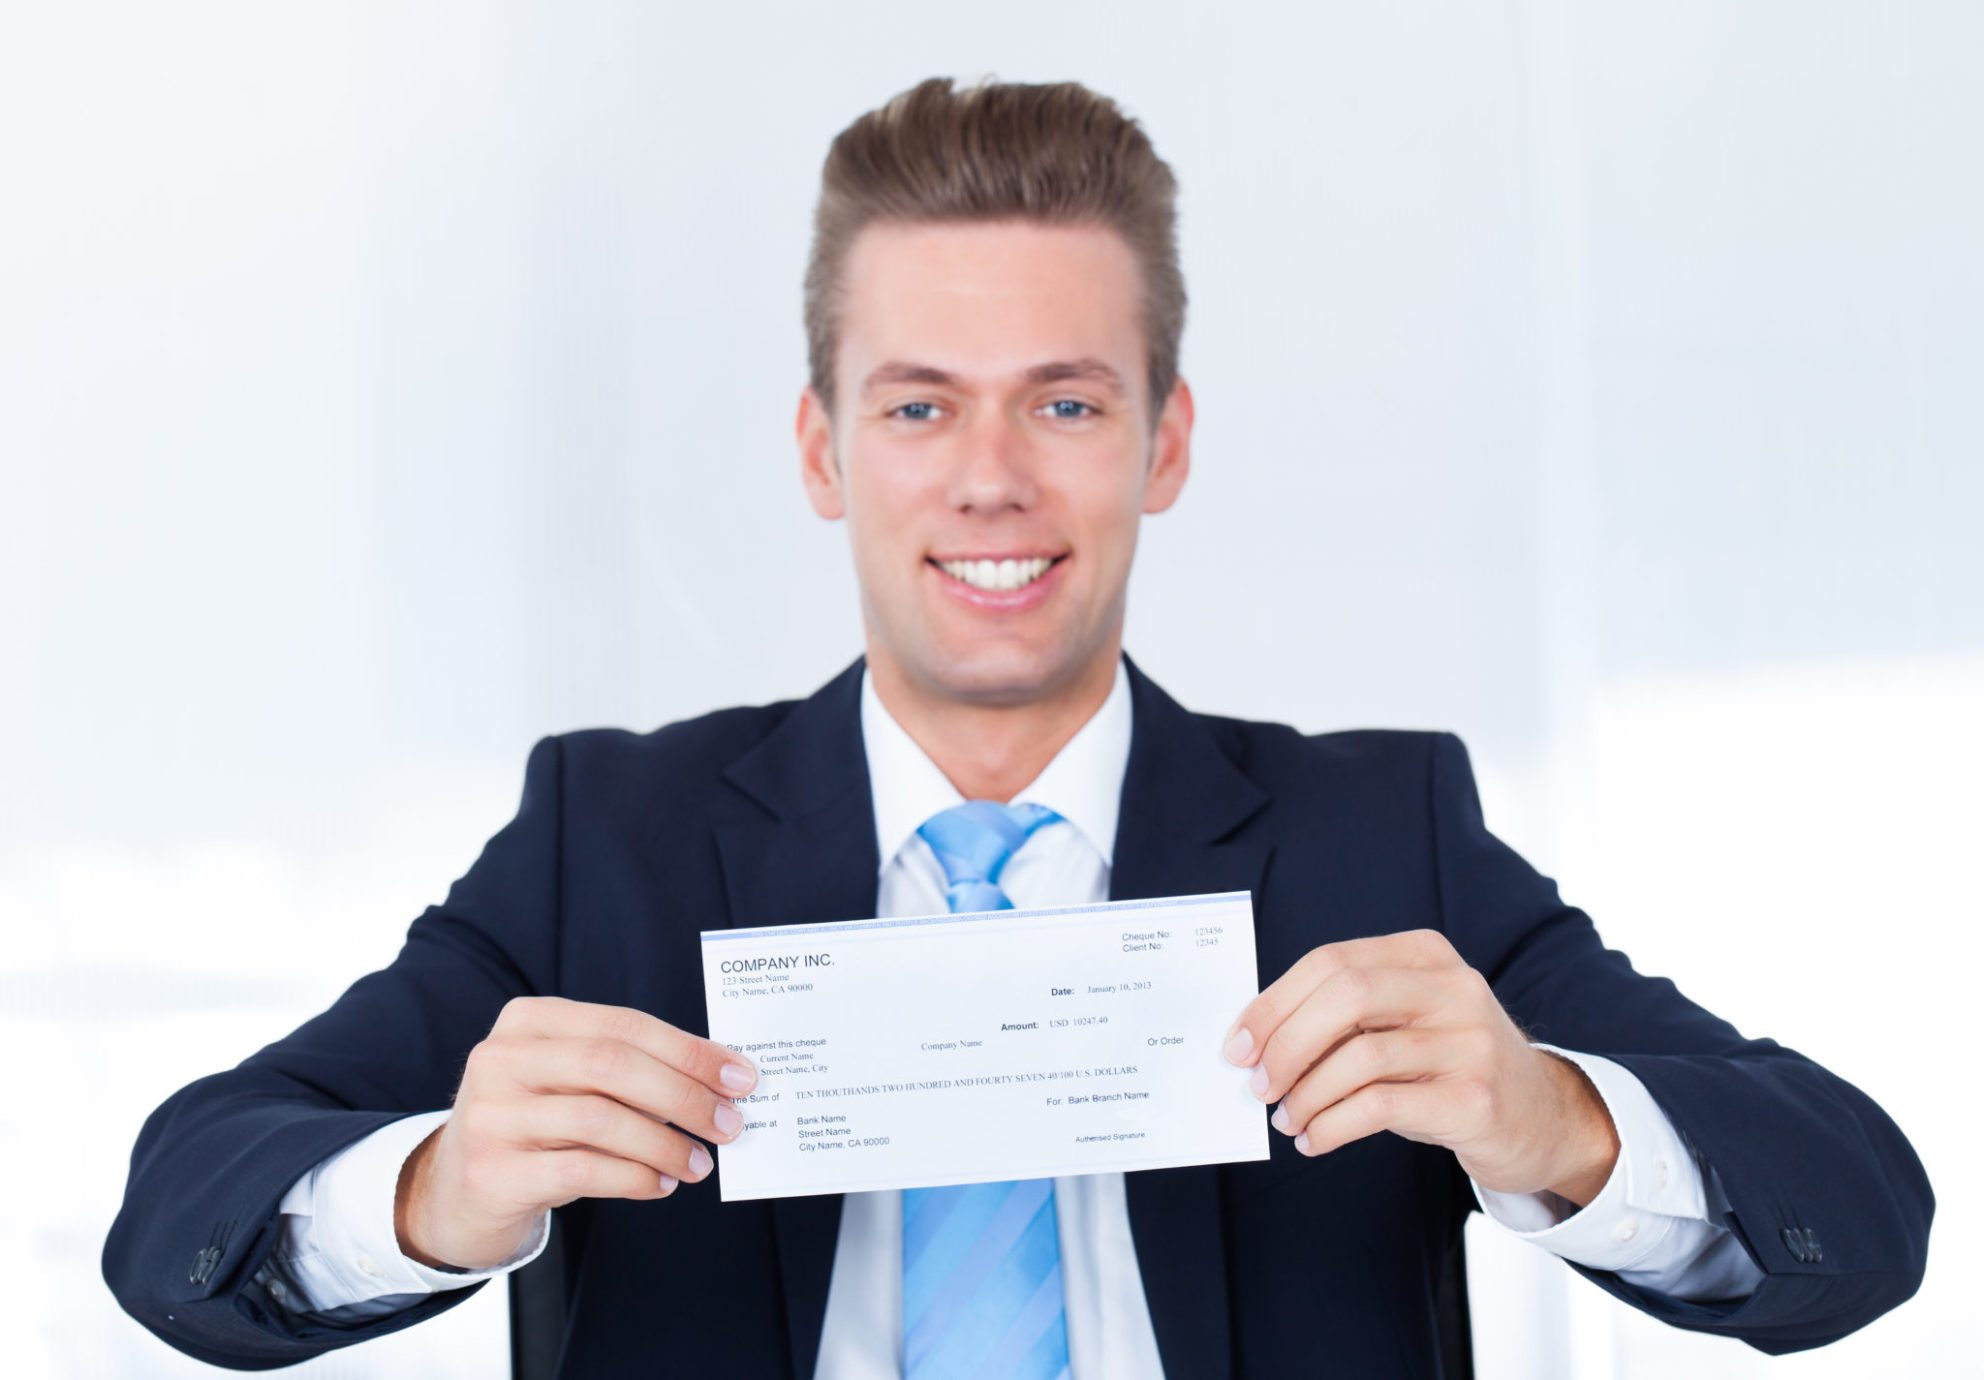 Recruit and retain agents by paying them promptly